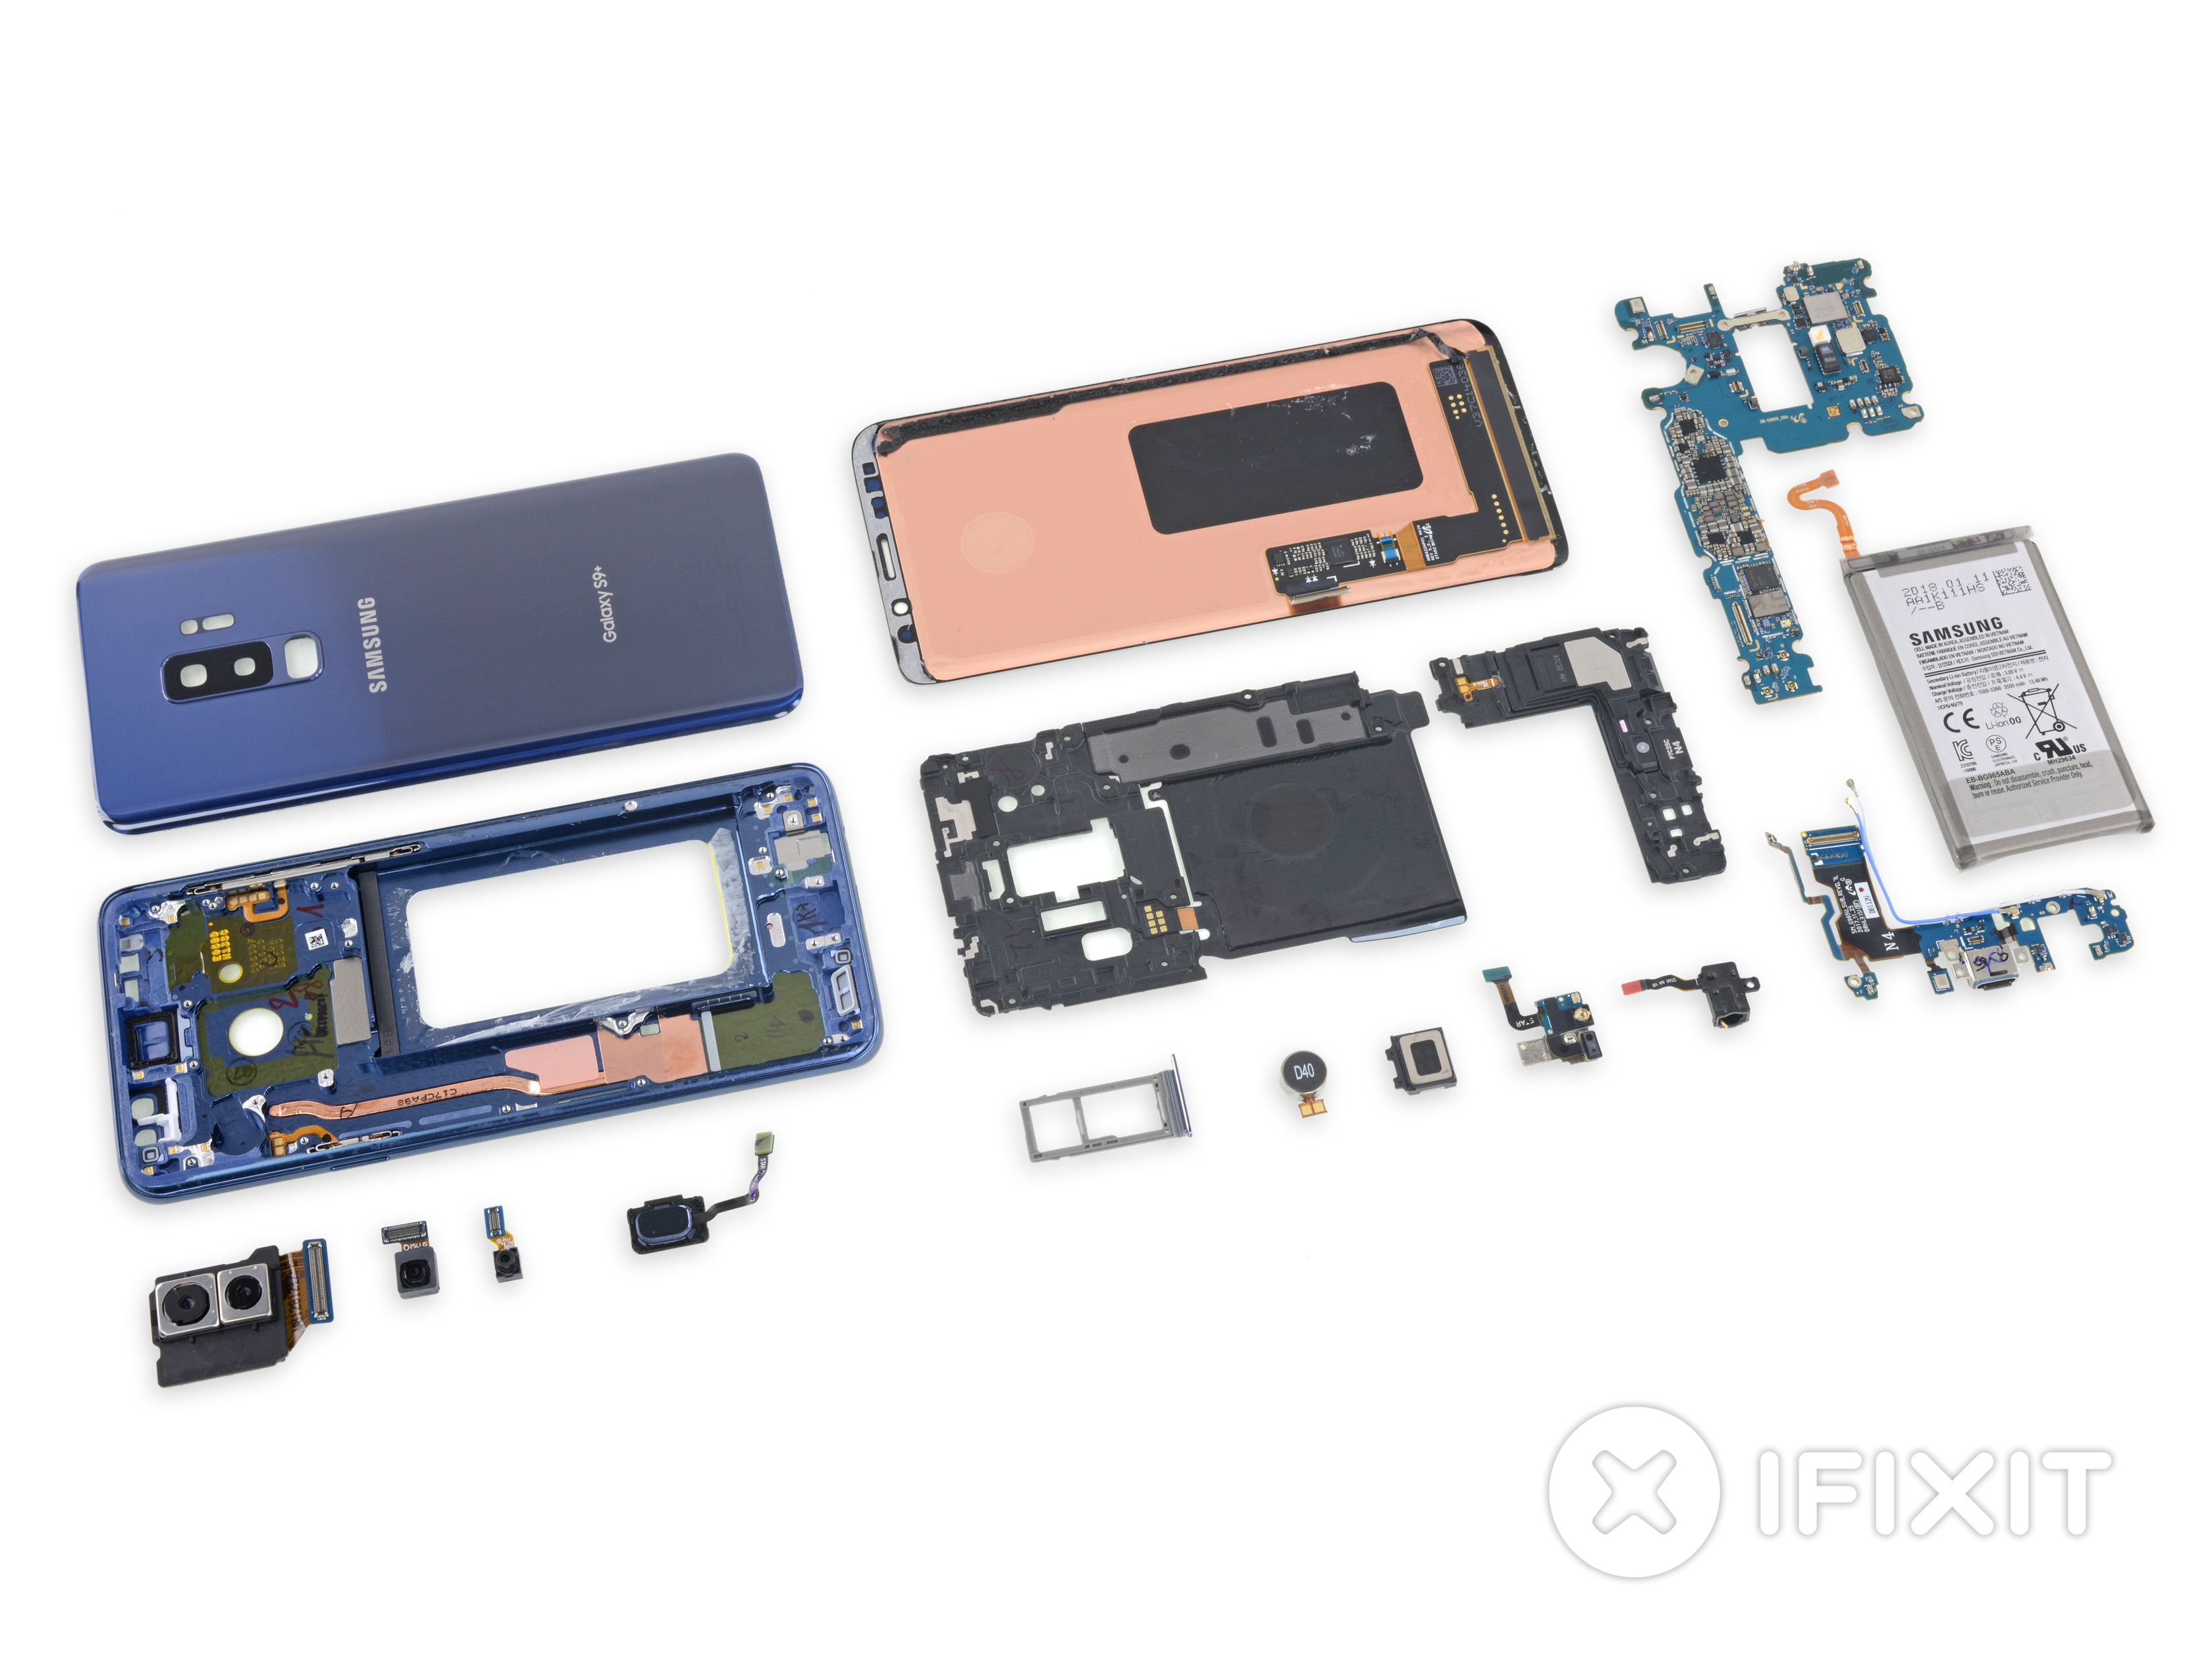 Samsung Galaxy S9 Teardown Ifixit Messages For Friends Images Diagram Of A Motherboard With Labels